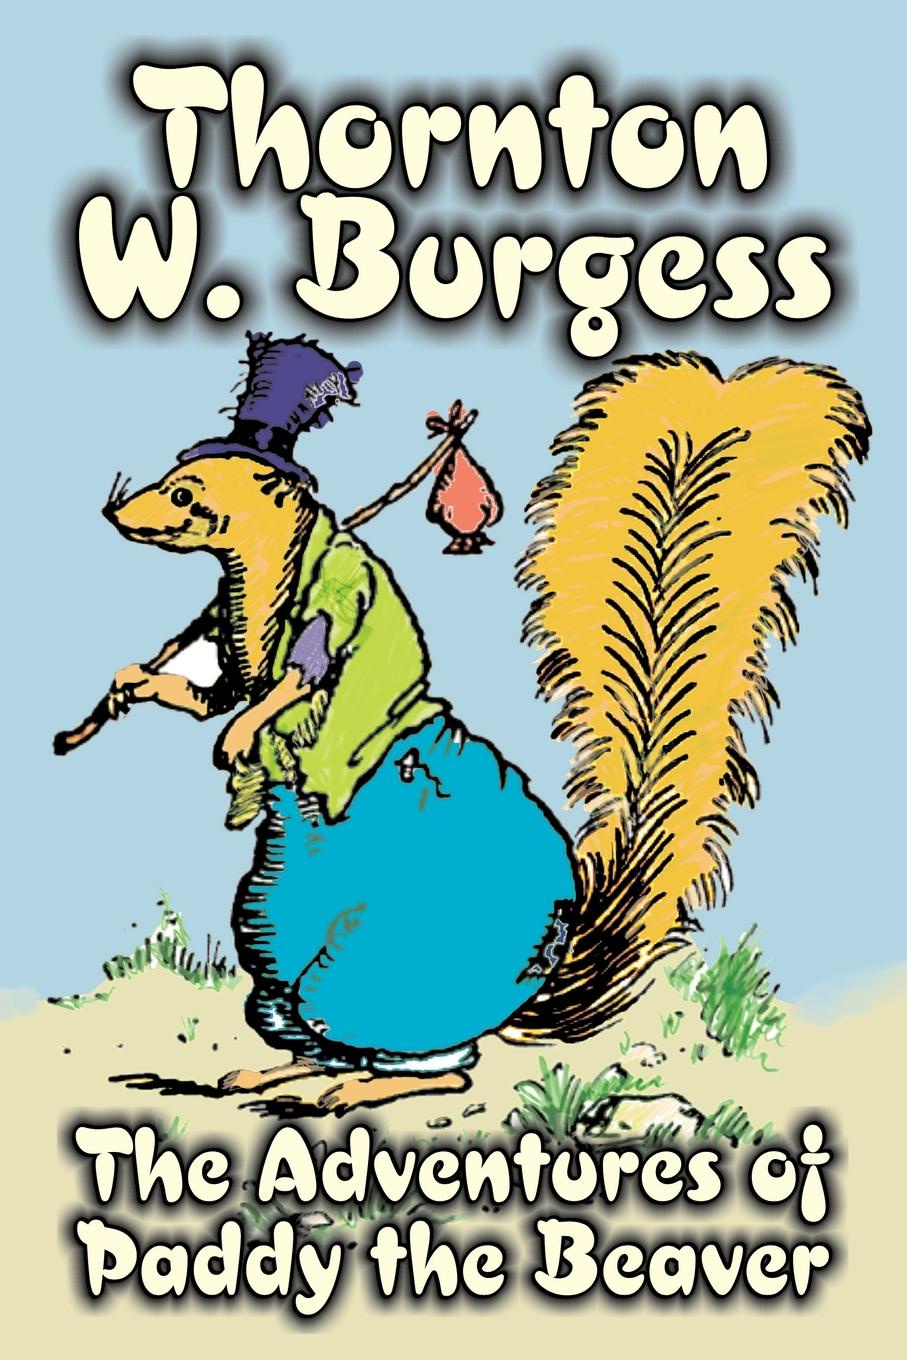 Thornton W. Burgess The Adventures of Paddy the Beaver by Thornton Burgess, Fiction, Animals, Fantasy & Magic